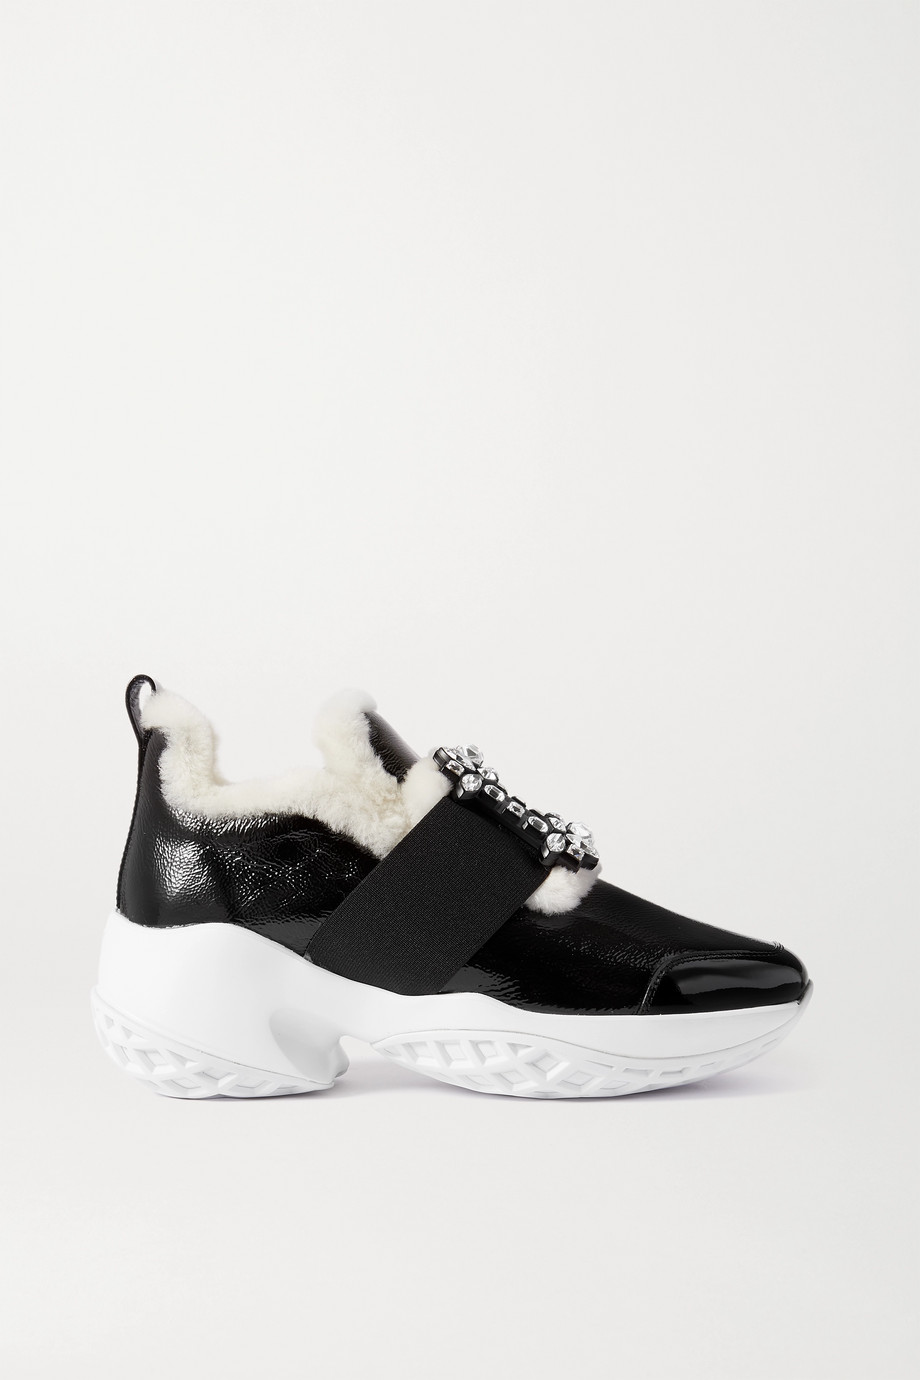 Roger Vivier Viv Run crystal-embellished shearling-trimmed patent-leather sneakers